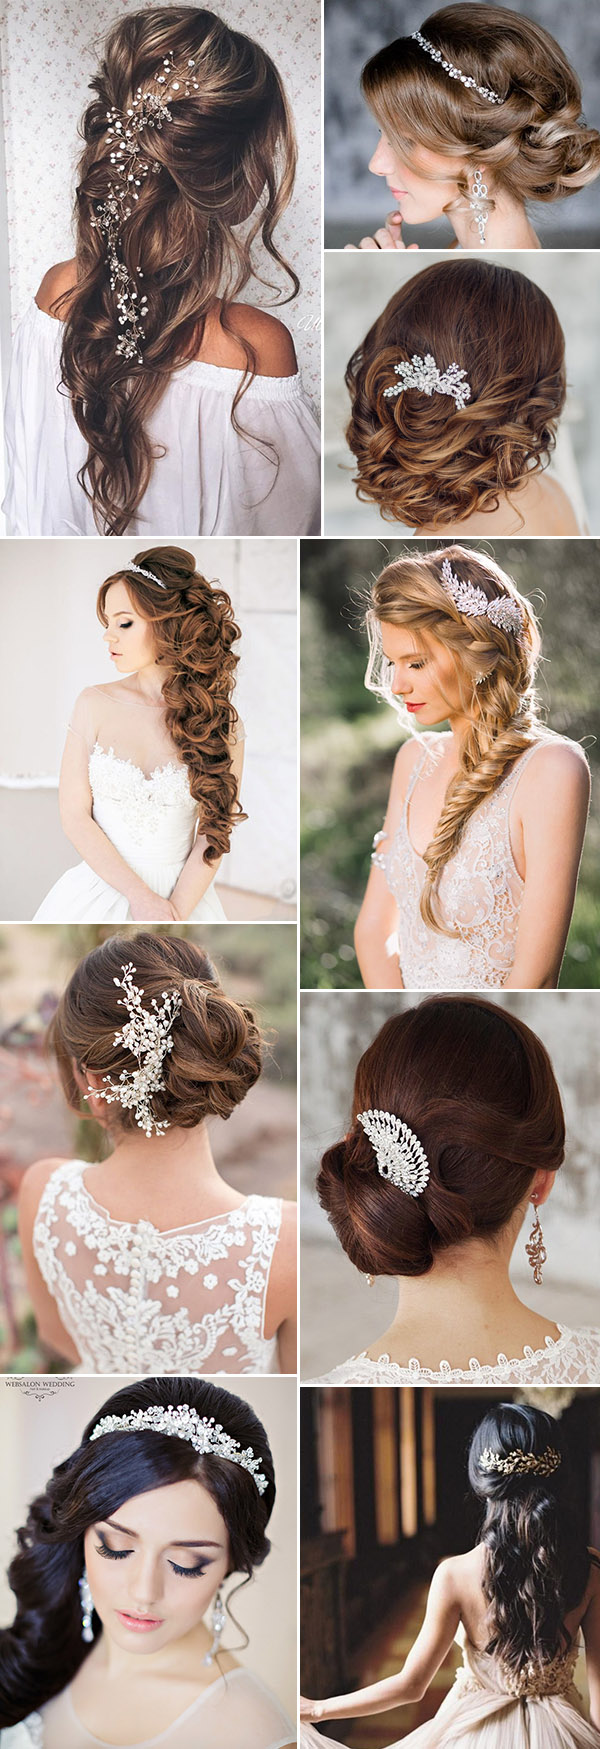 Floral fancy bridal headpieces hair accessories 2018 19 for Where to buy wedding accessories